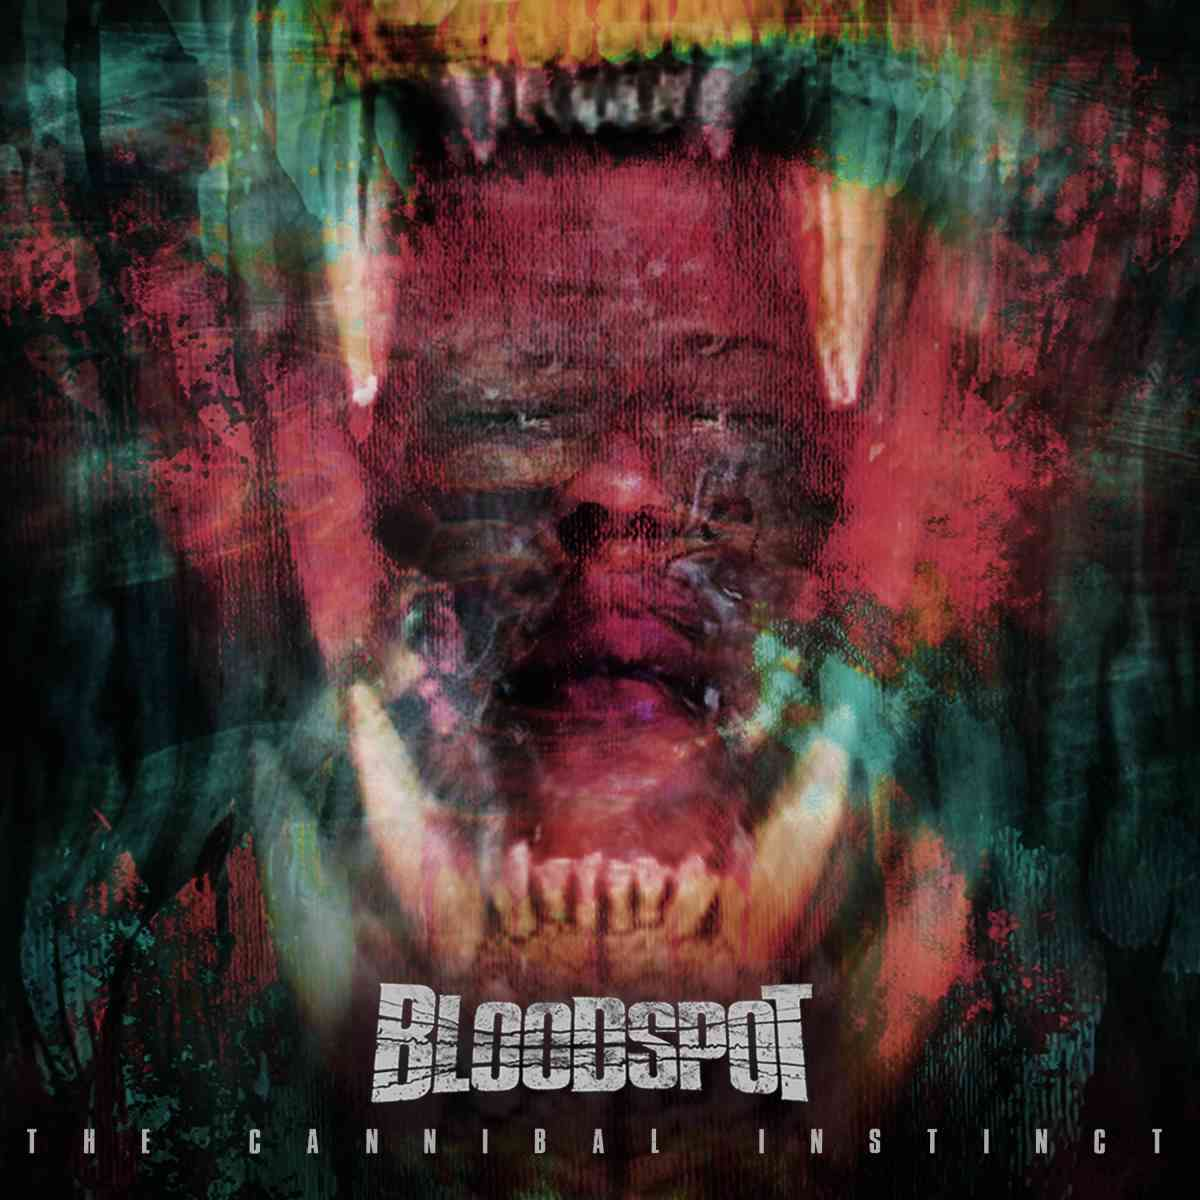 bloodspot - The Cannibal Instinct - album cover